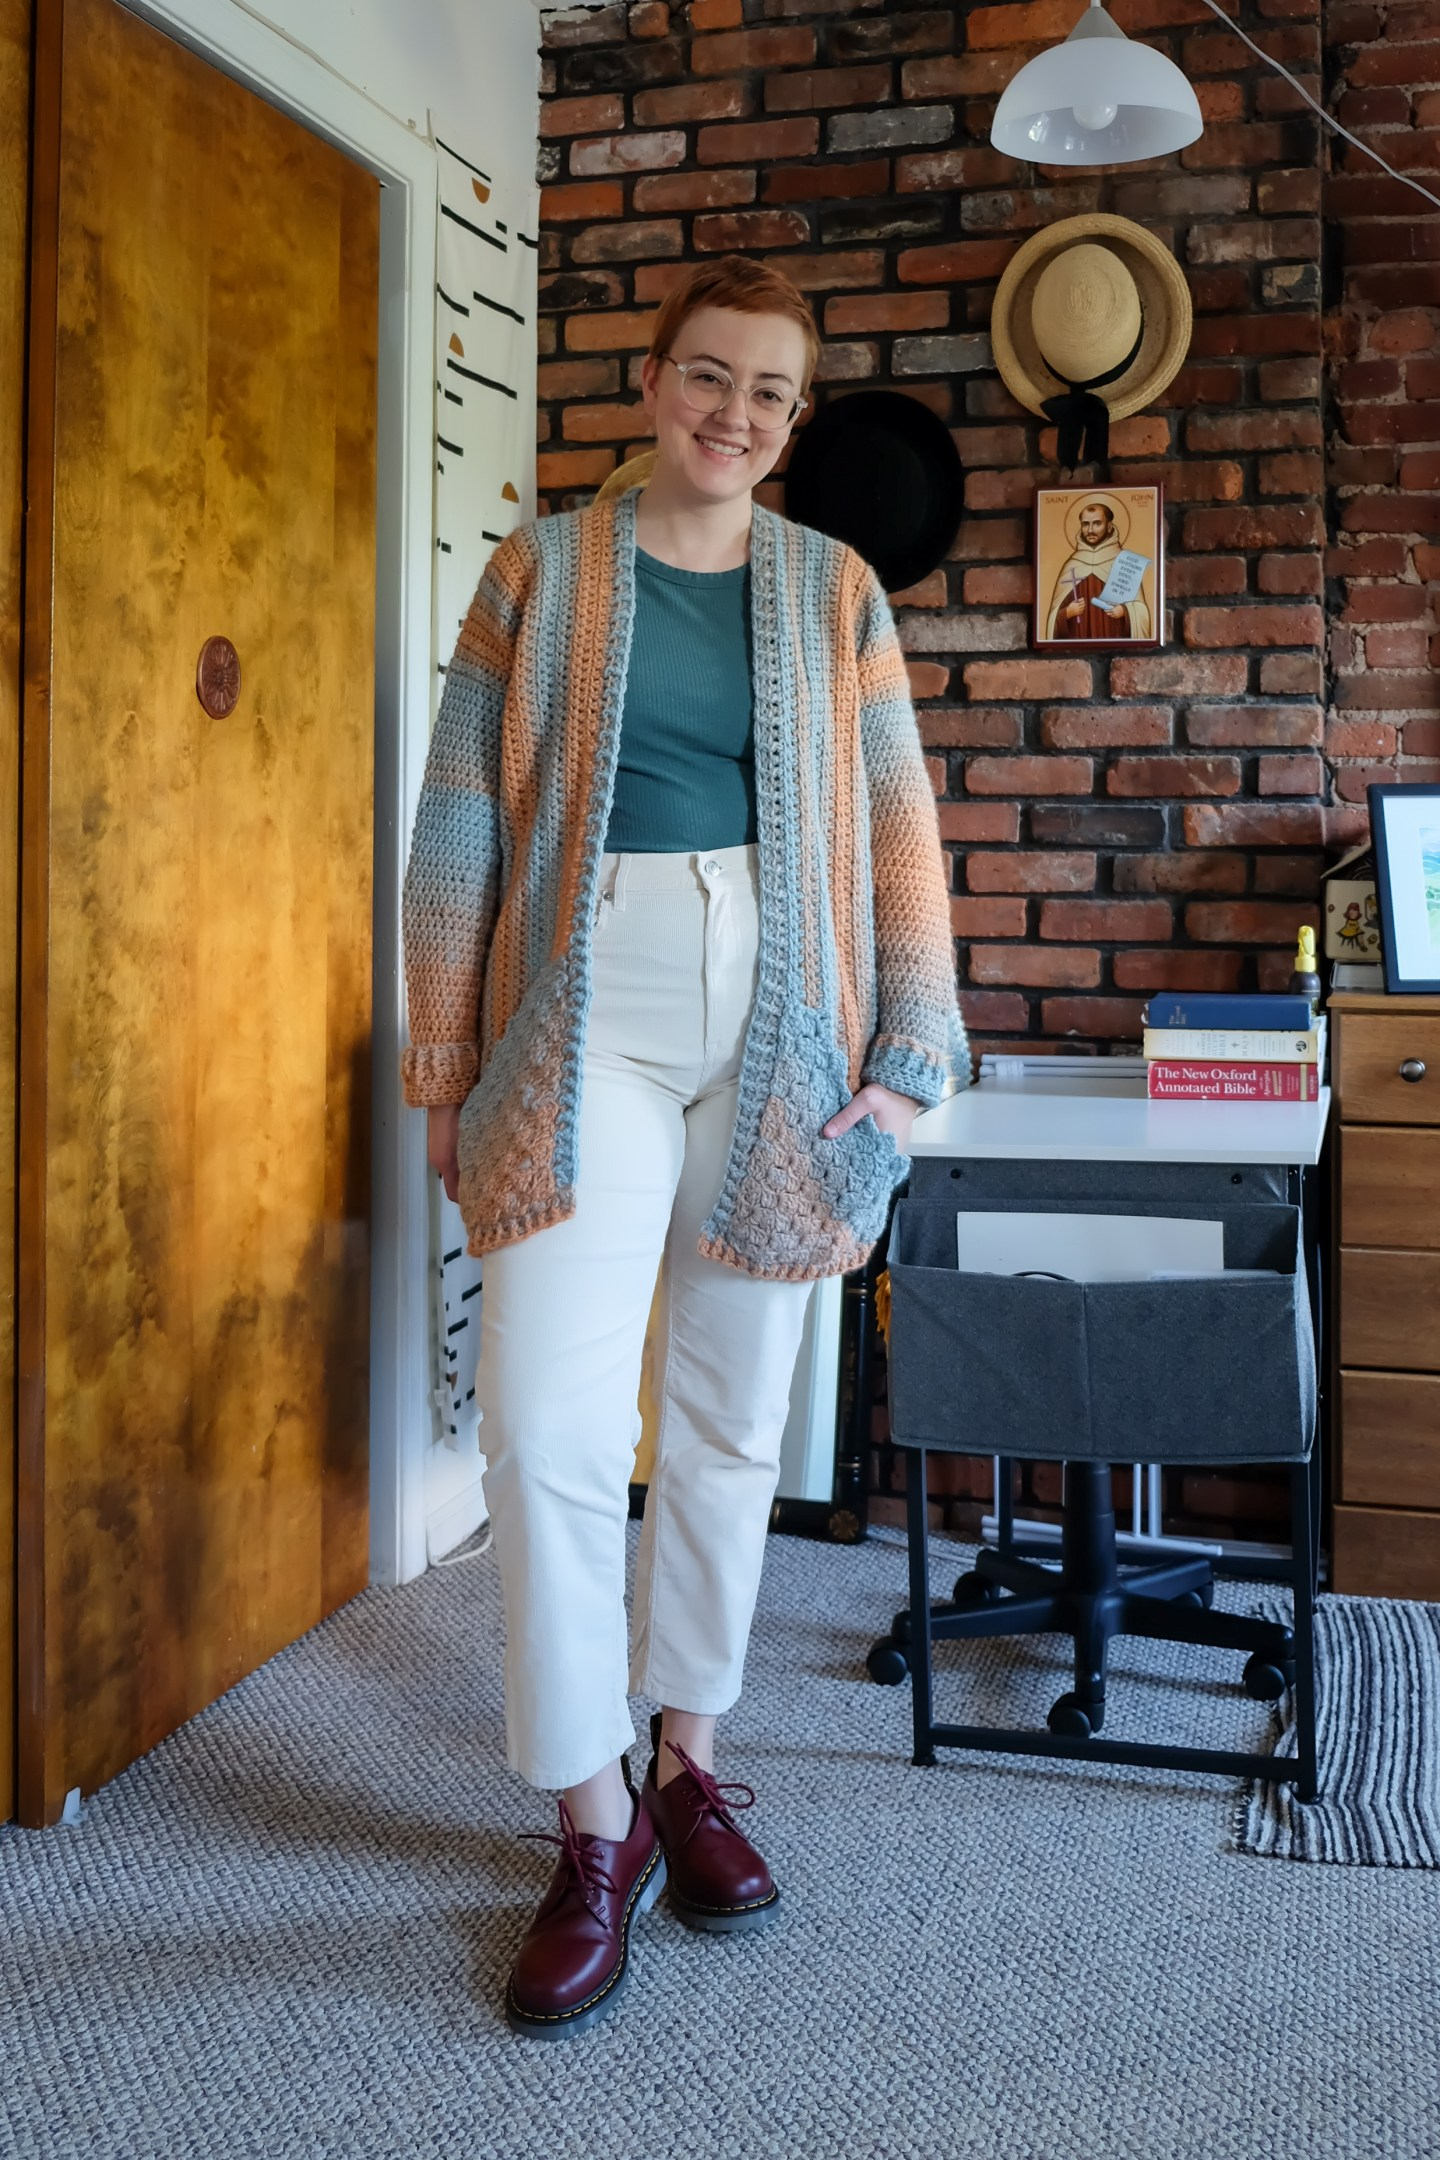 Things My Mom Crocheted for Me - Cardigan